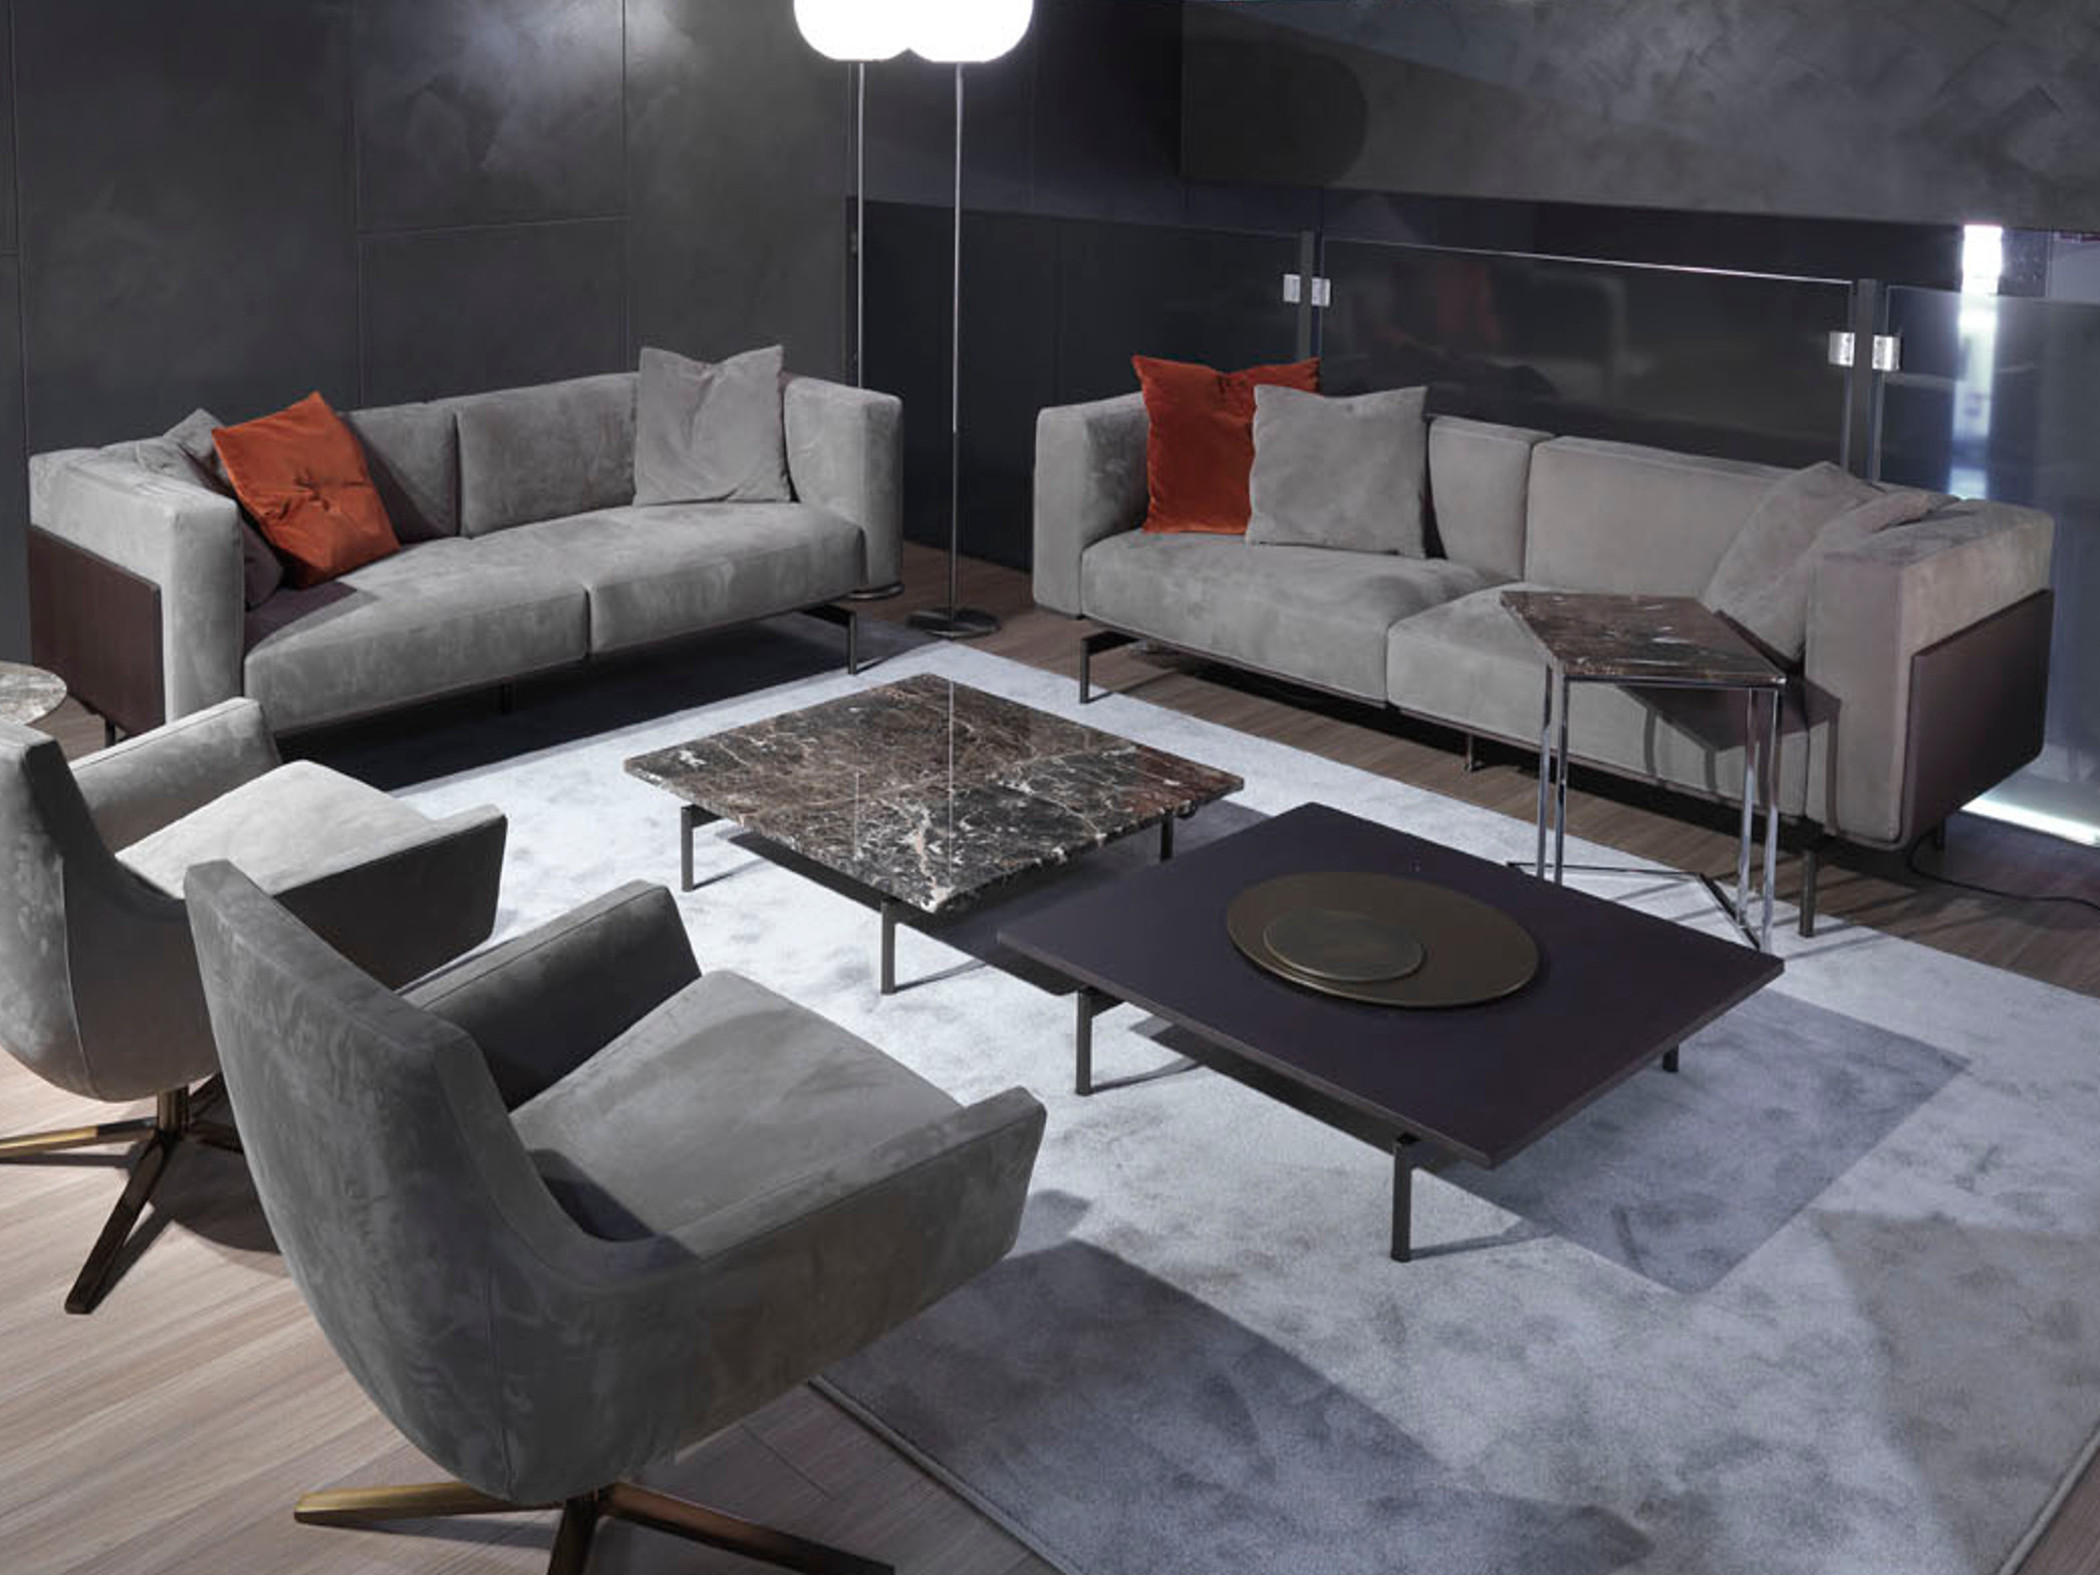 Design linear sofa leather nabuk wooden panels L-sofa